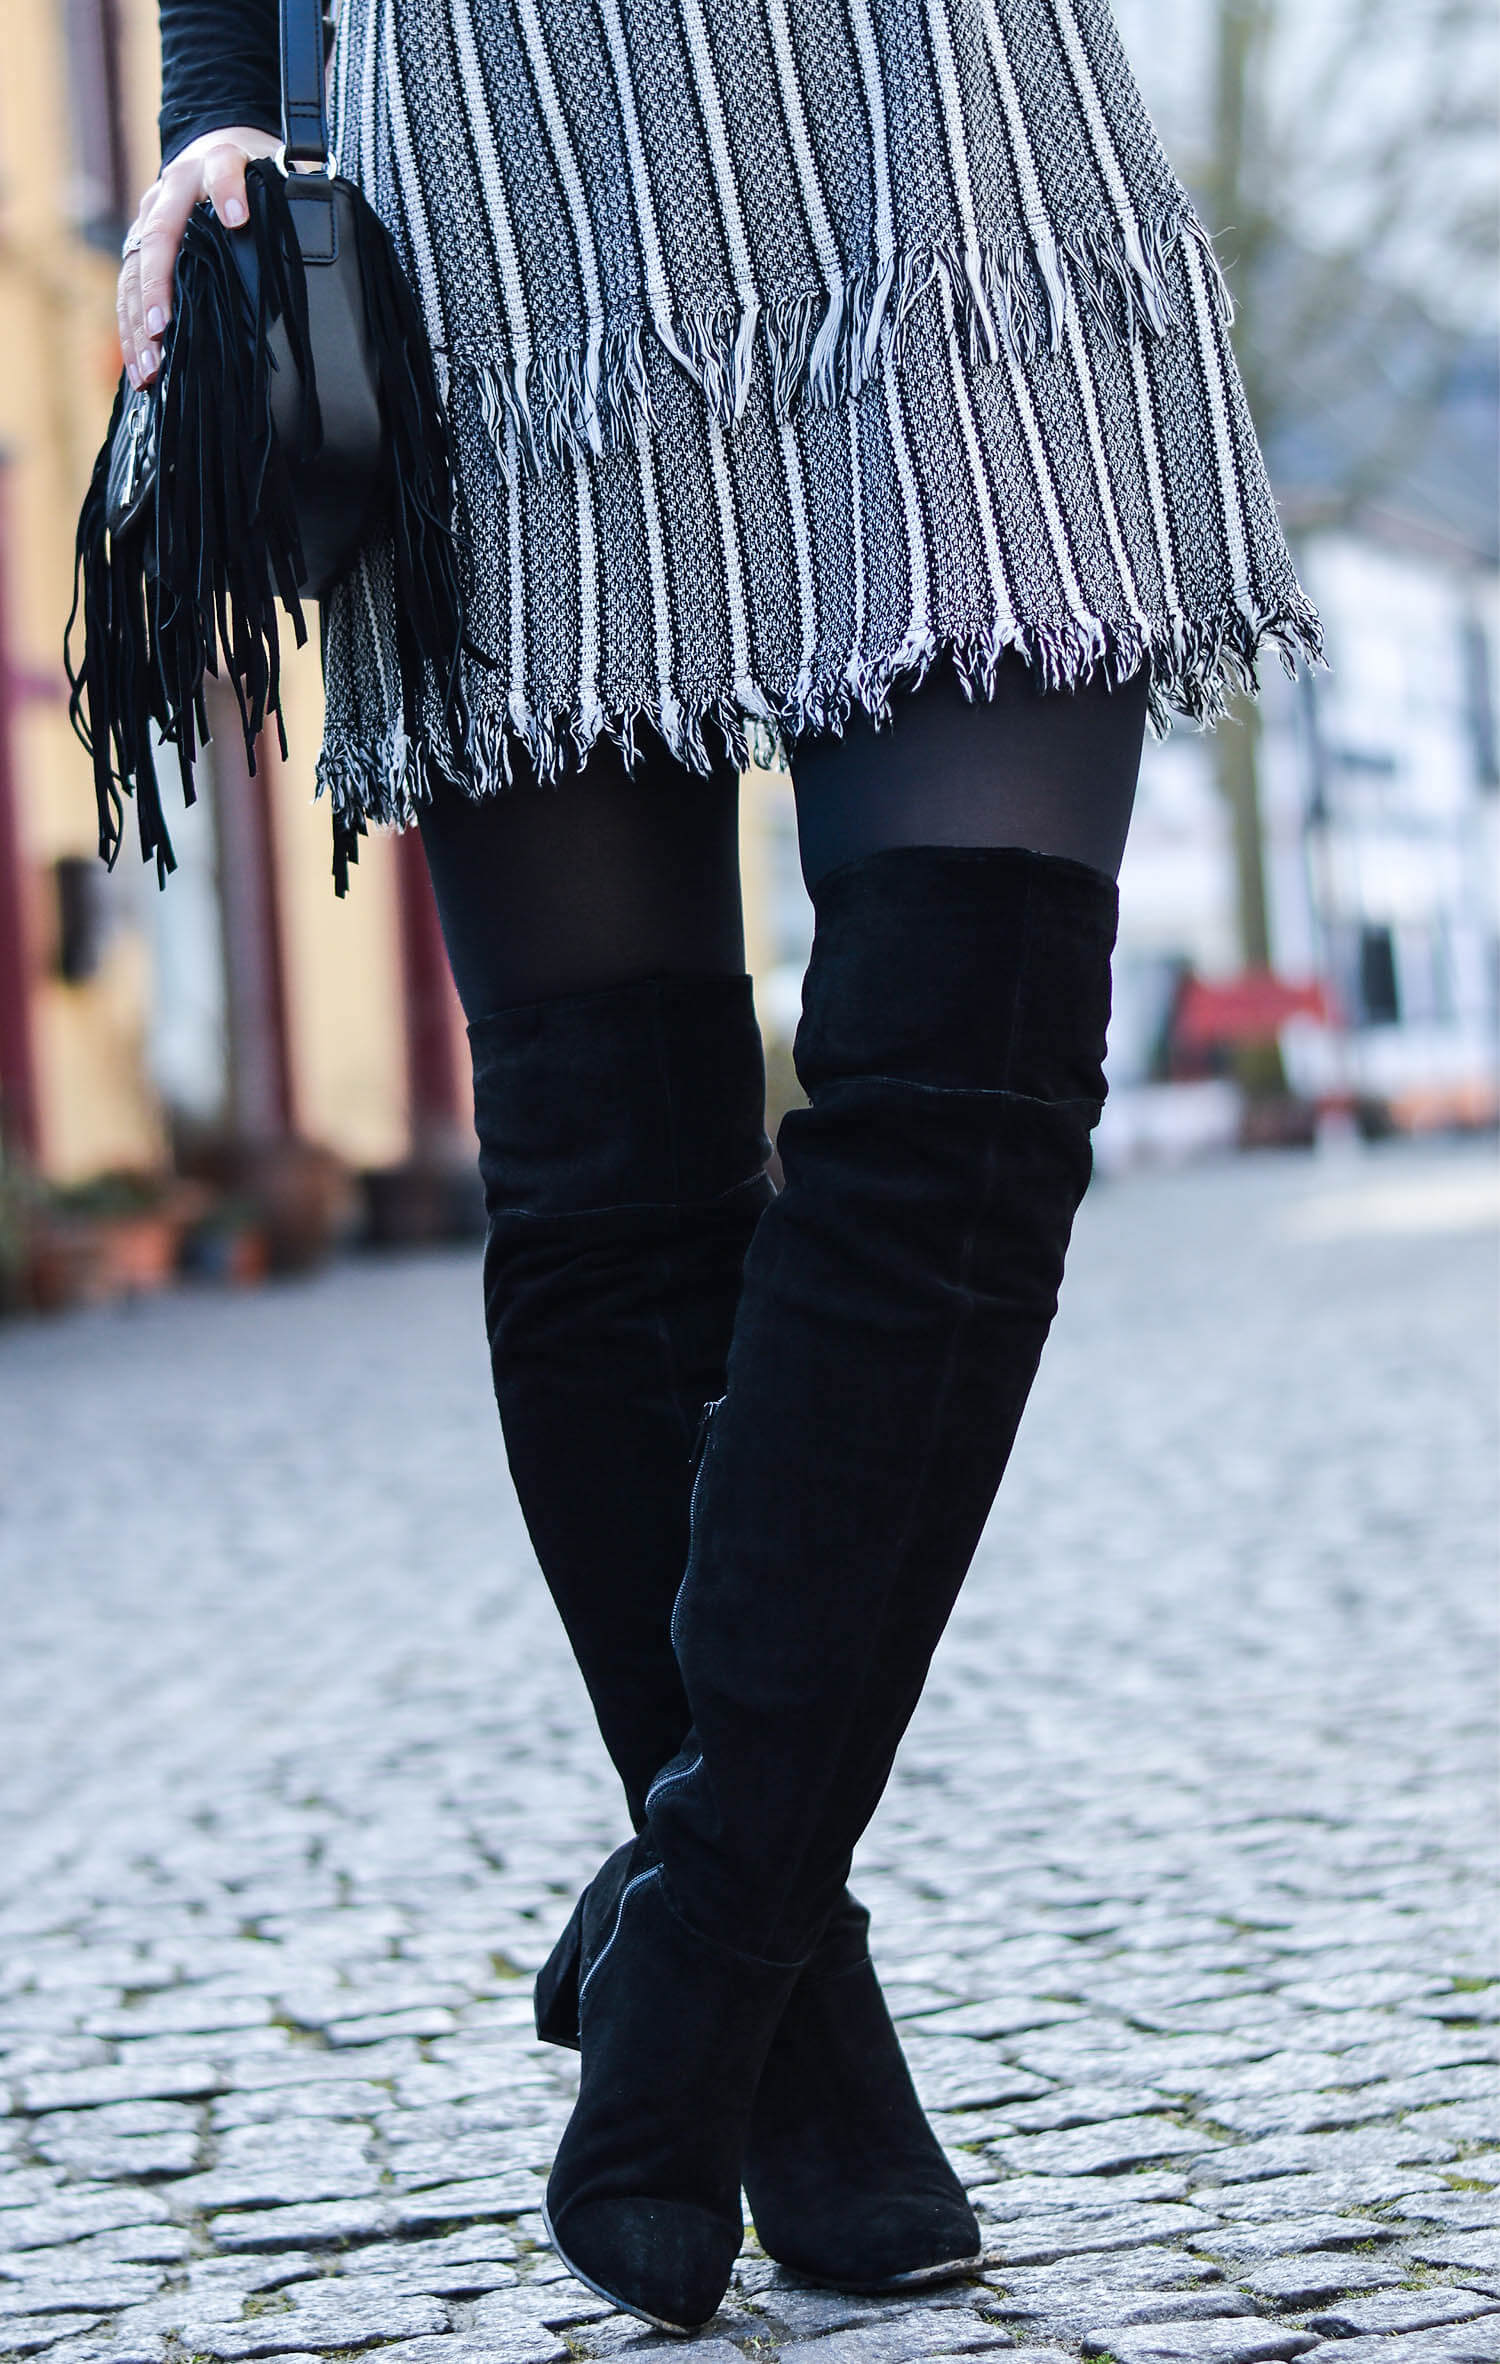 Kationette-fashionblog-nrw-outfit-Tweed-Dress-Chanel-Brooch-Overknees-streetstyle